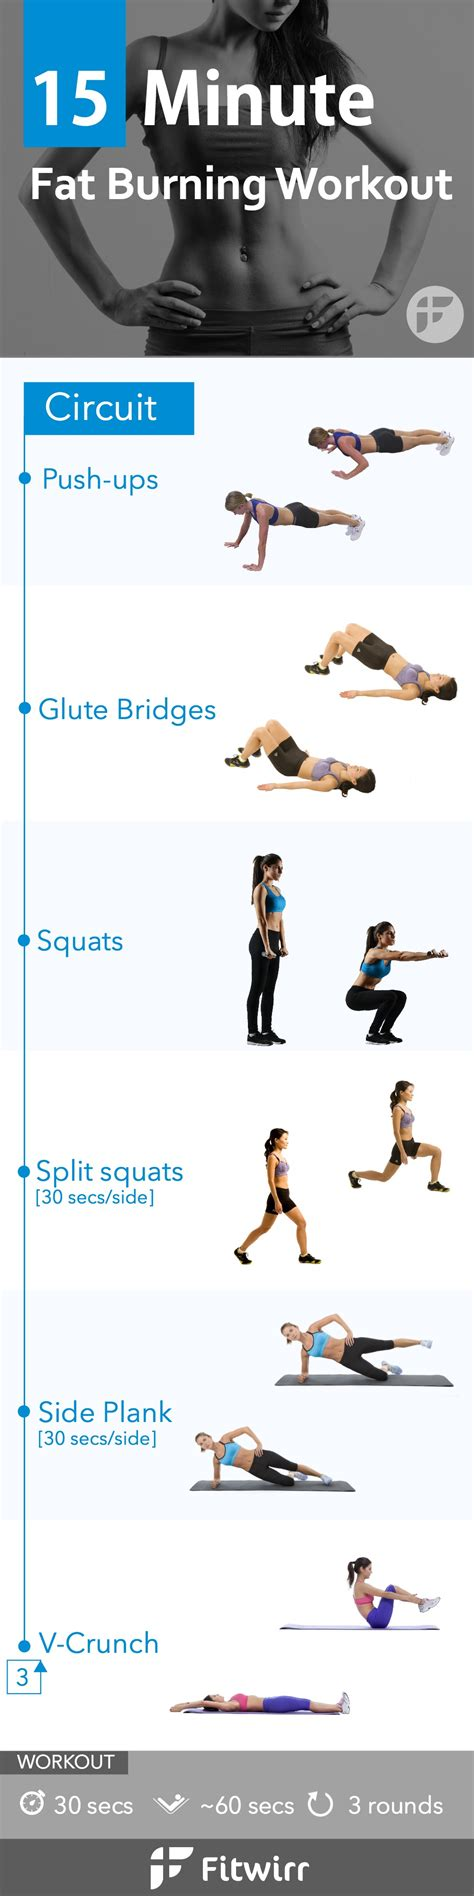 The Best Routine For Burning by 15 Minute Bodyweight Loss Workout For